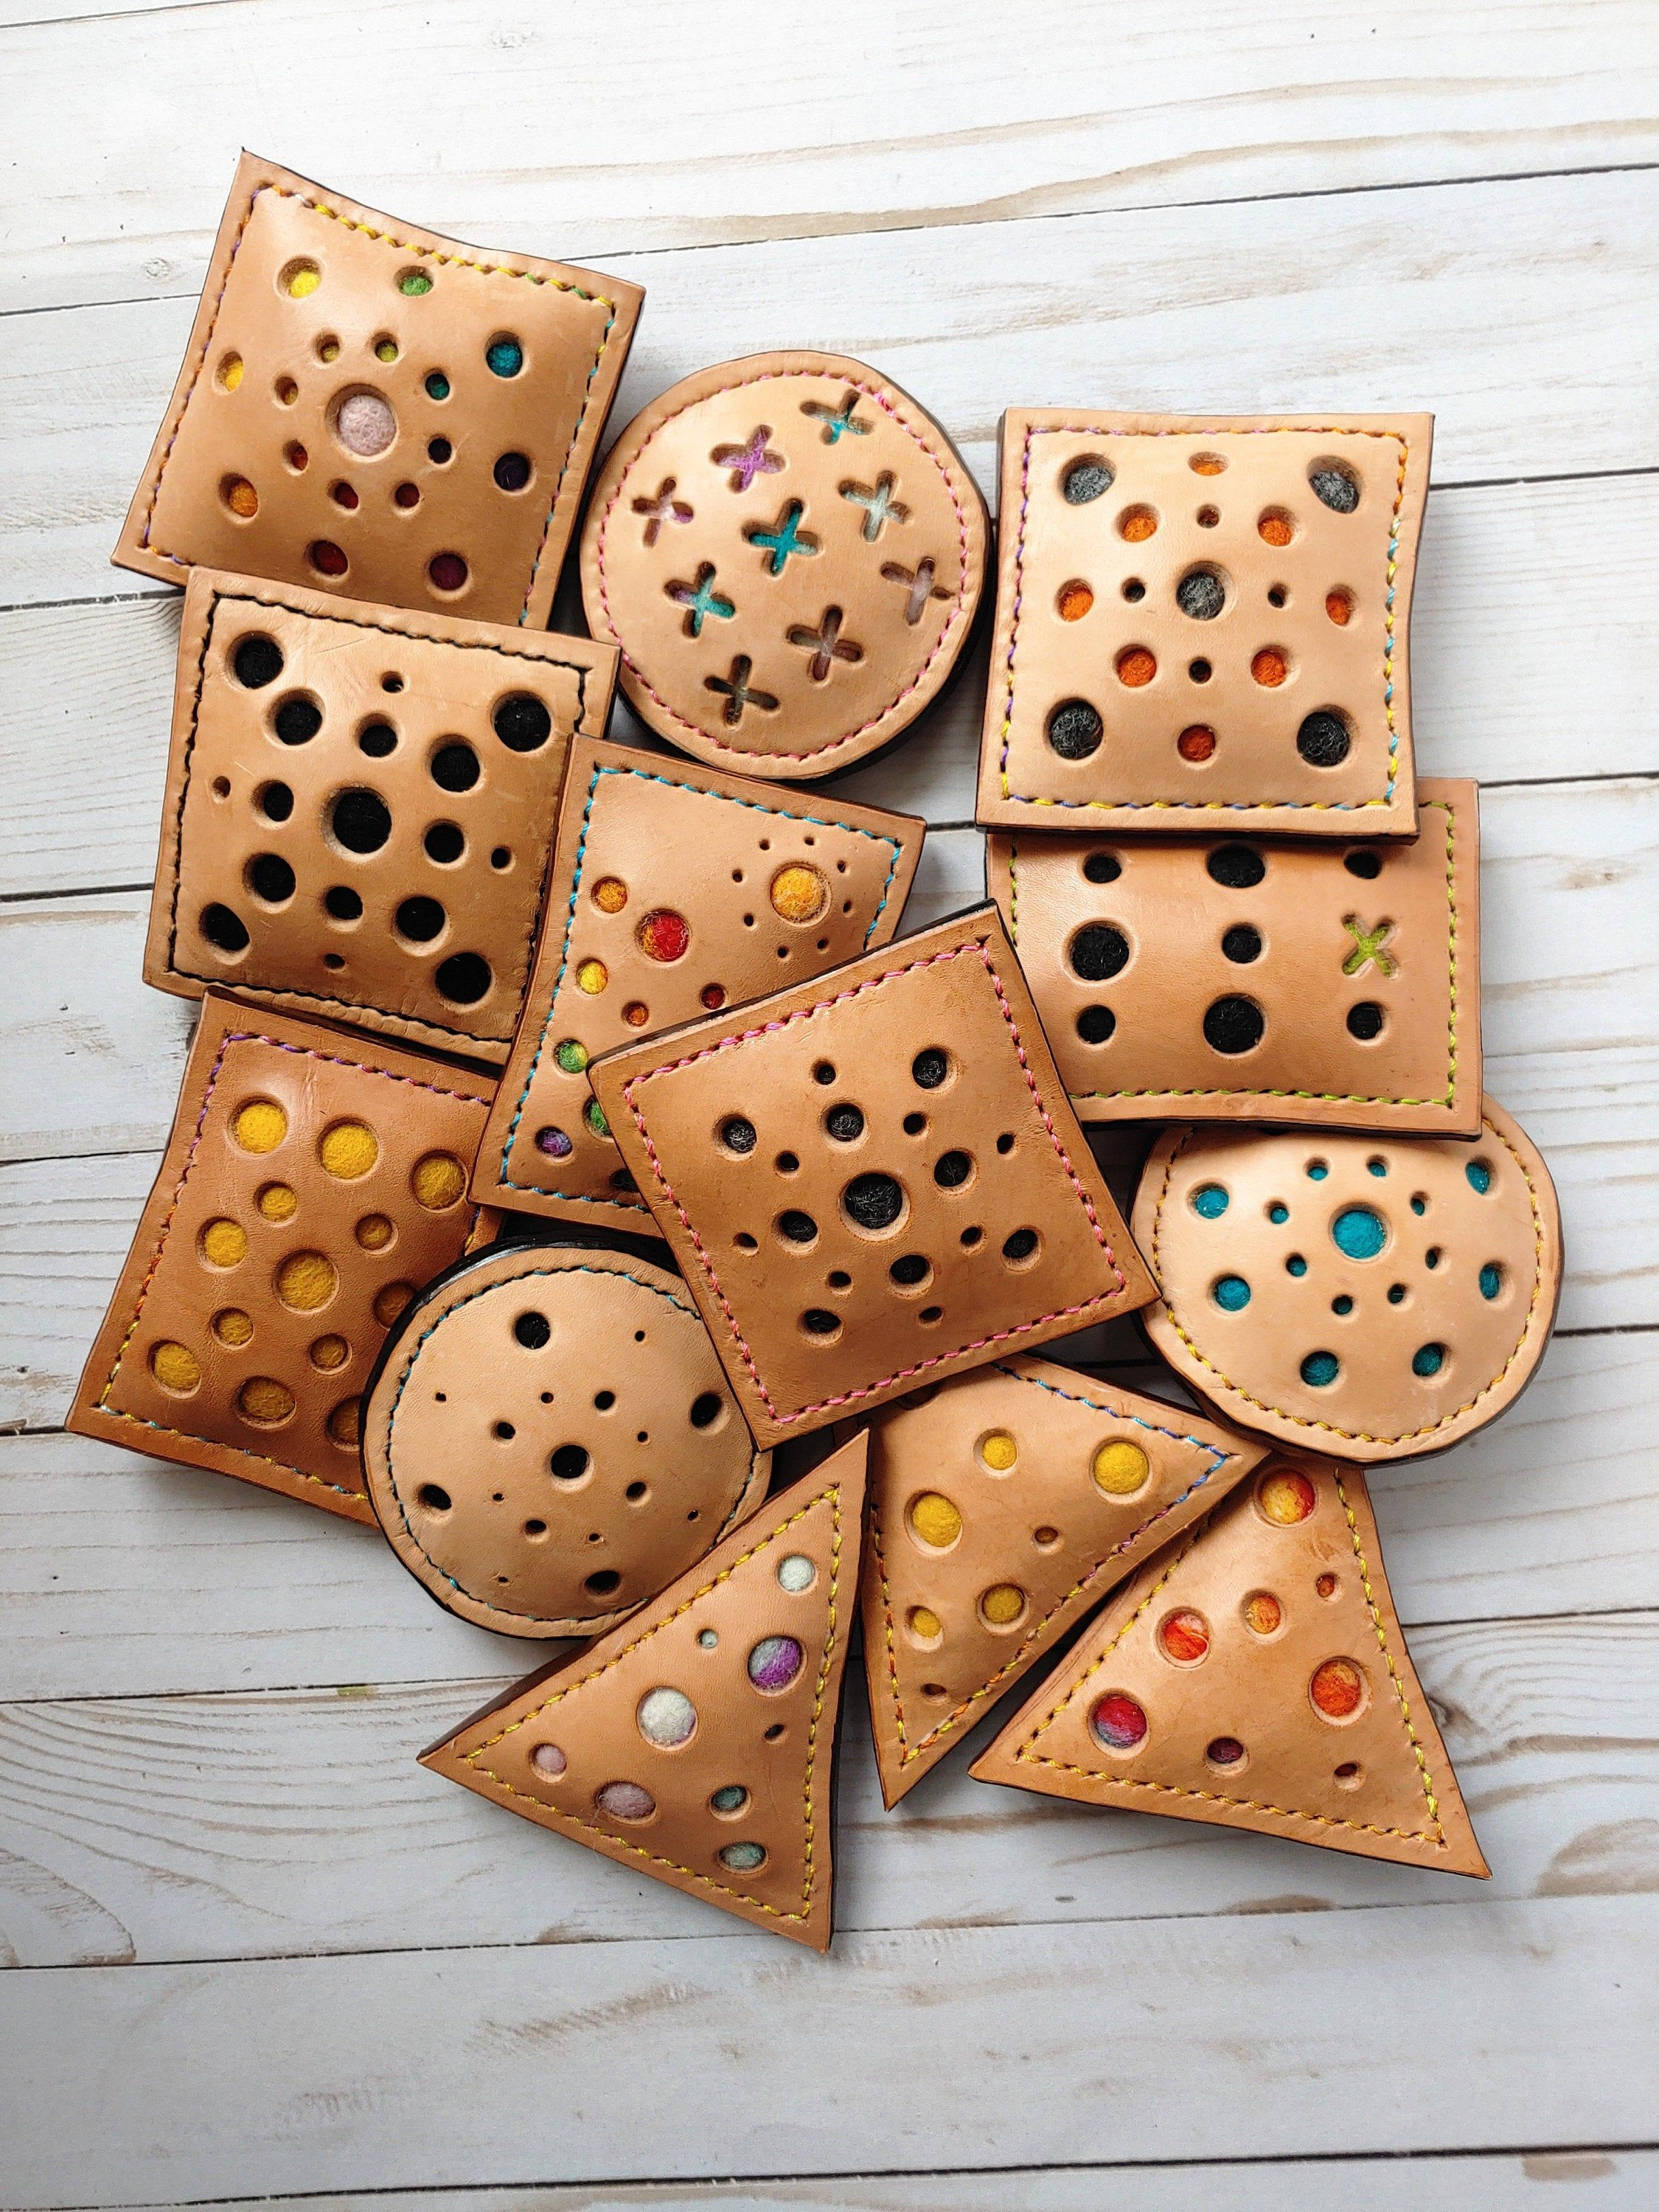 Handcrafted Stitched Goods and Leather Pincushions by GAndTheBear